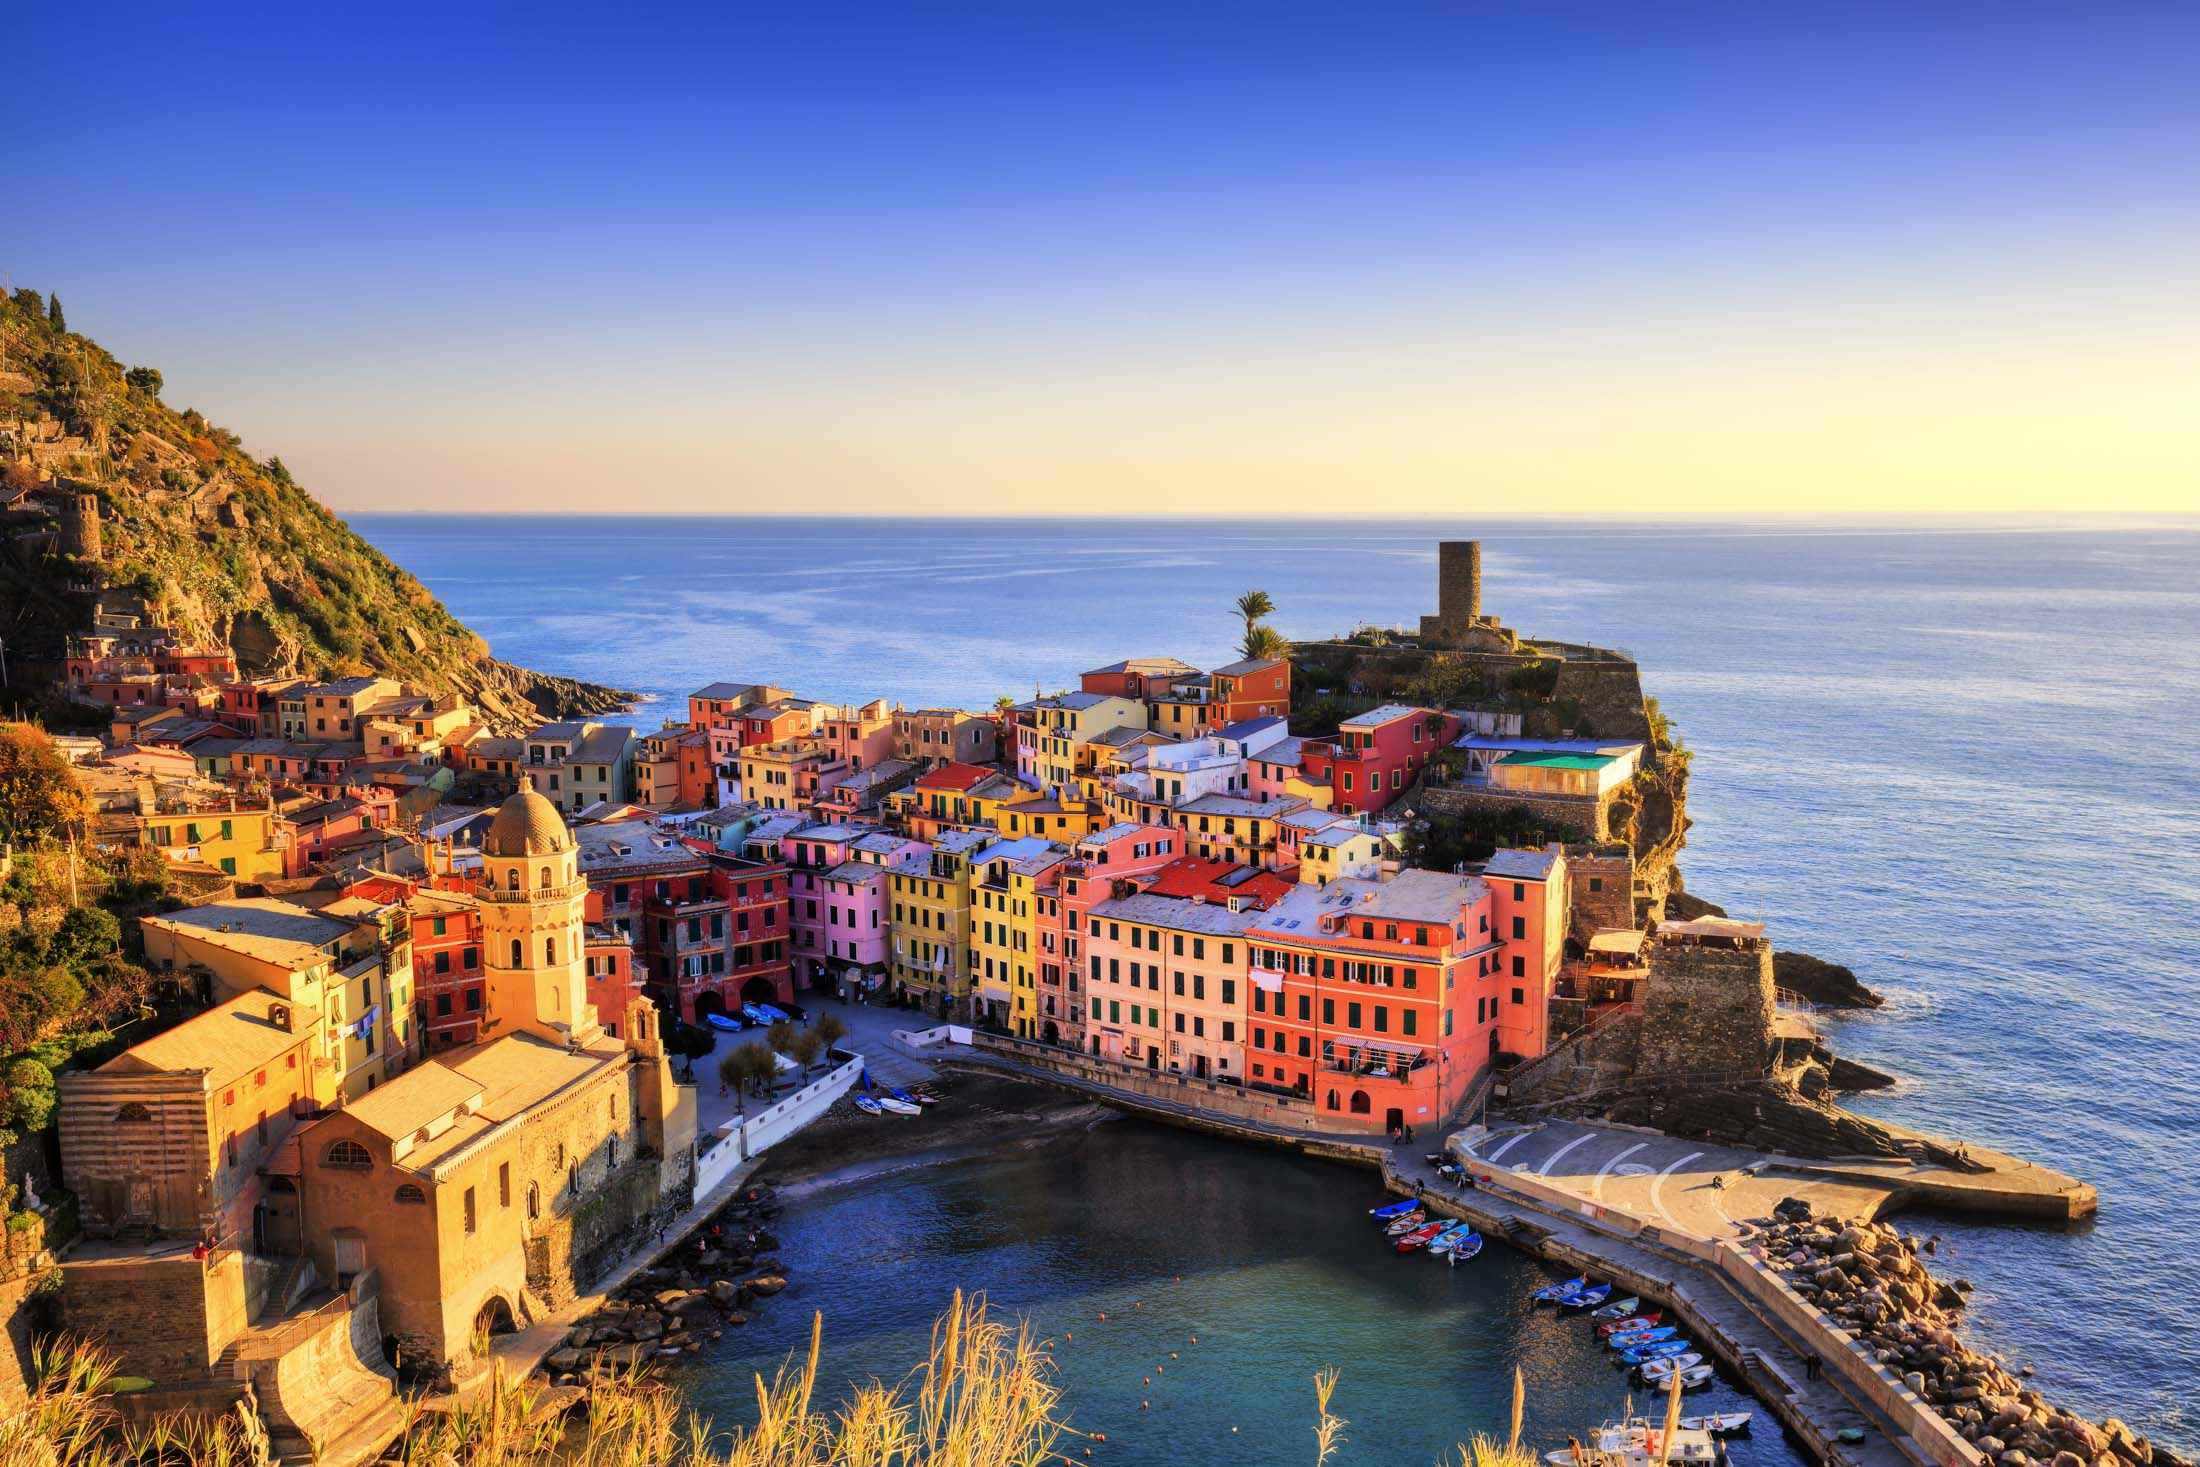 Aerial View of the Vernazza Village in Cinque Terre, Italy.